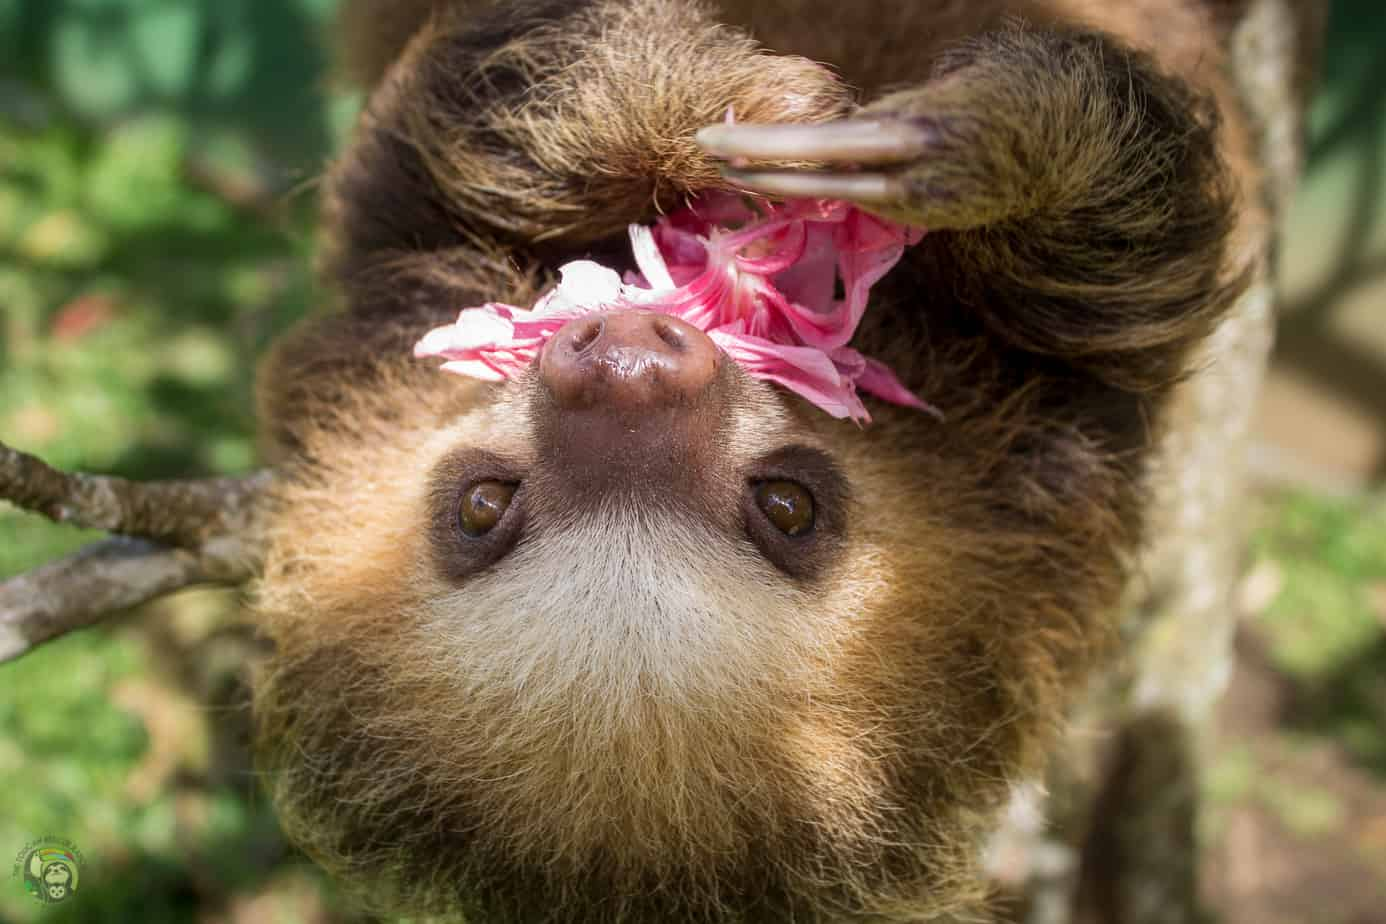 Pippin the sloth in Costa Rica